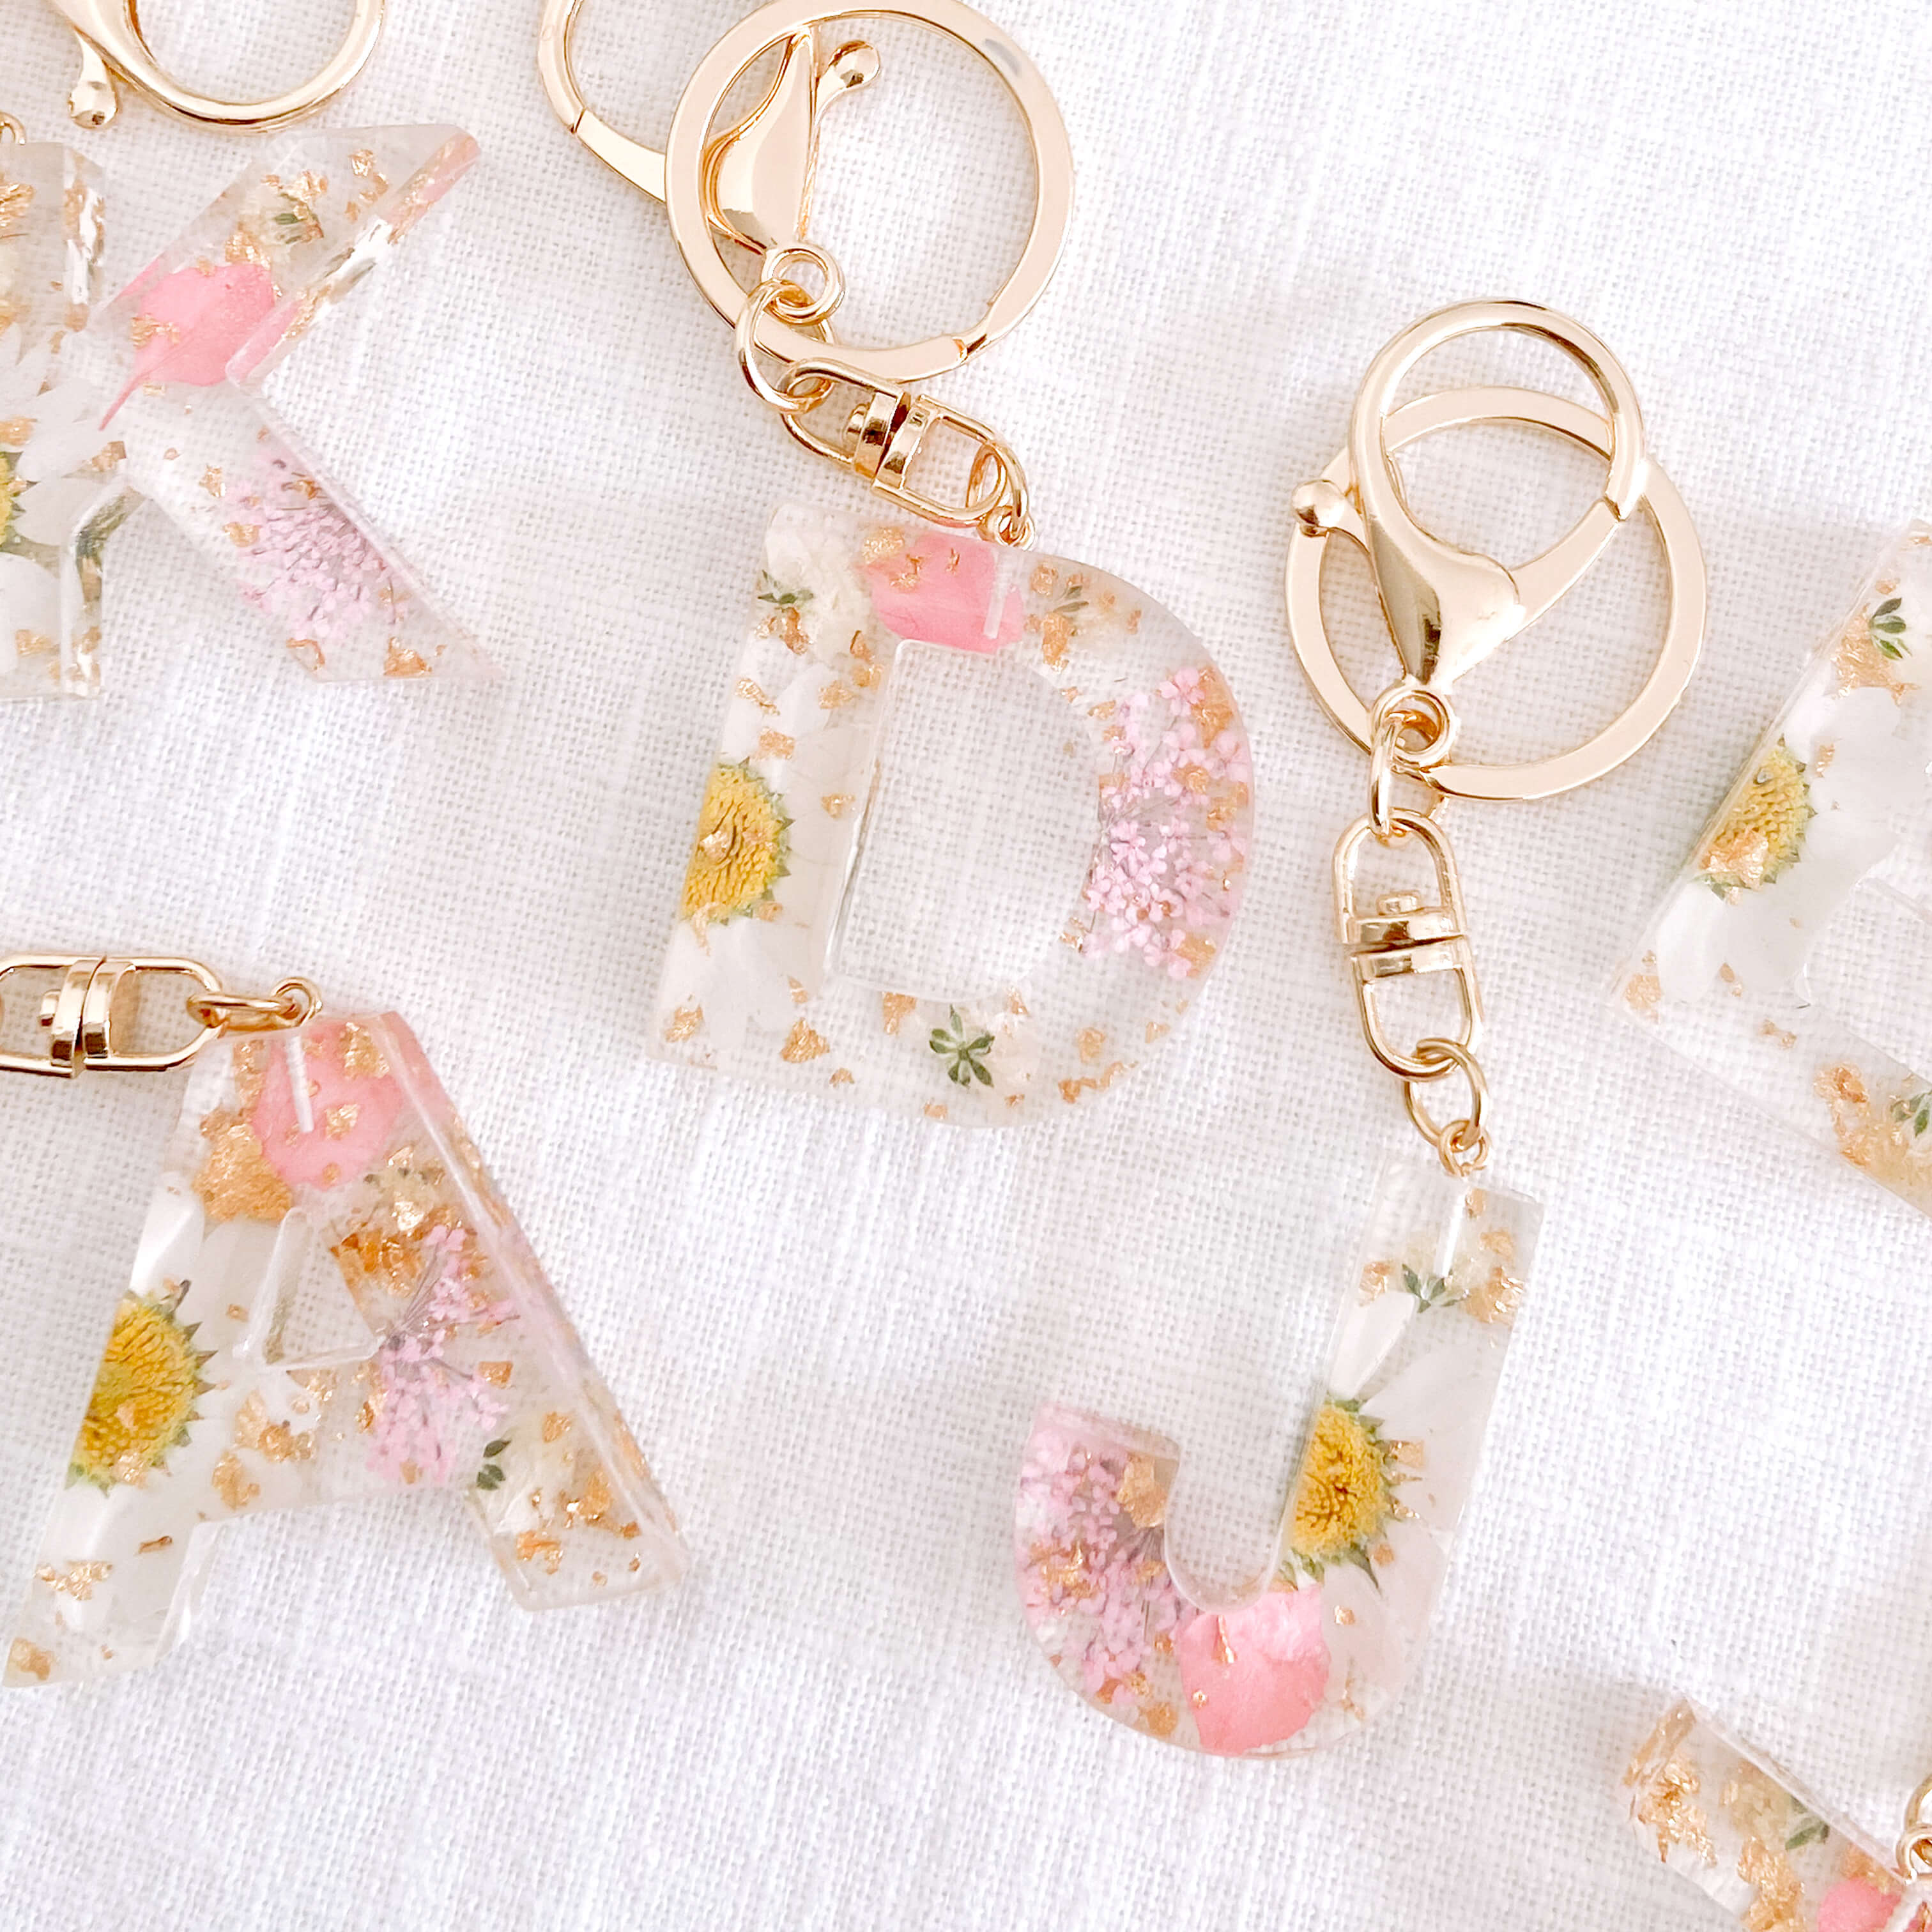 Girls backpack accessories. Letter resin keychain or initial keyring